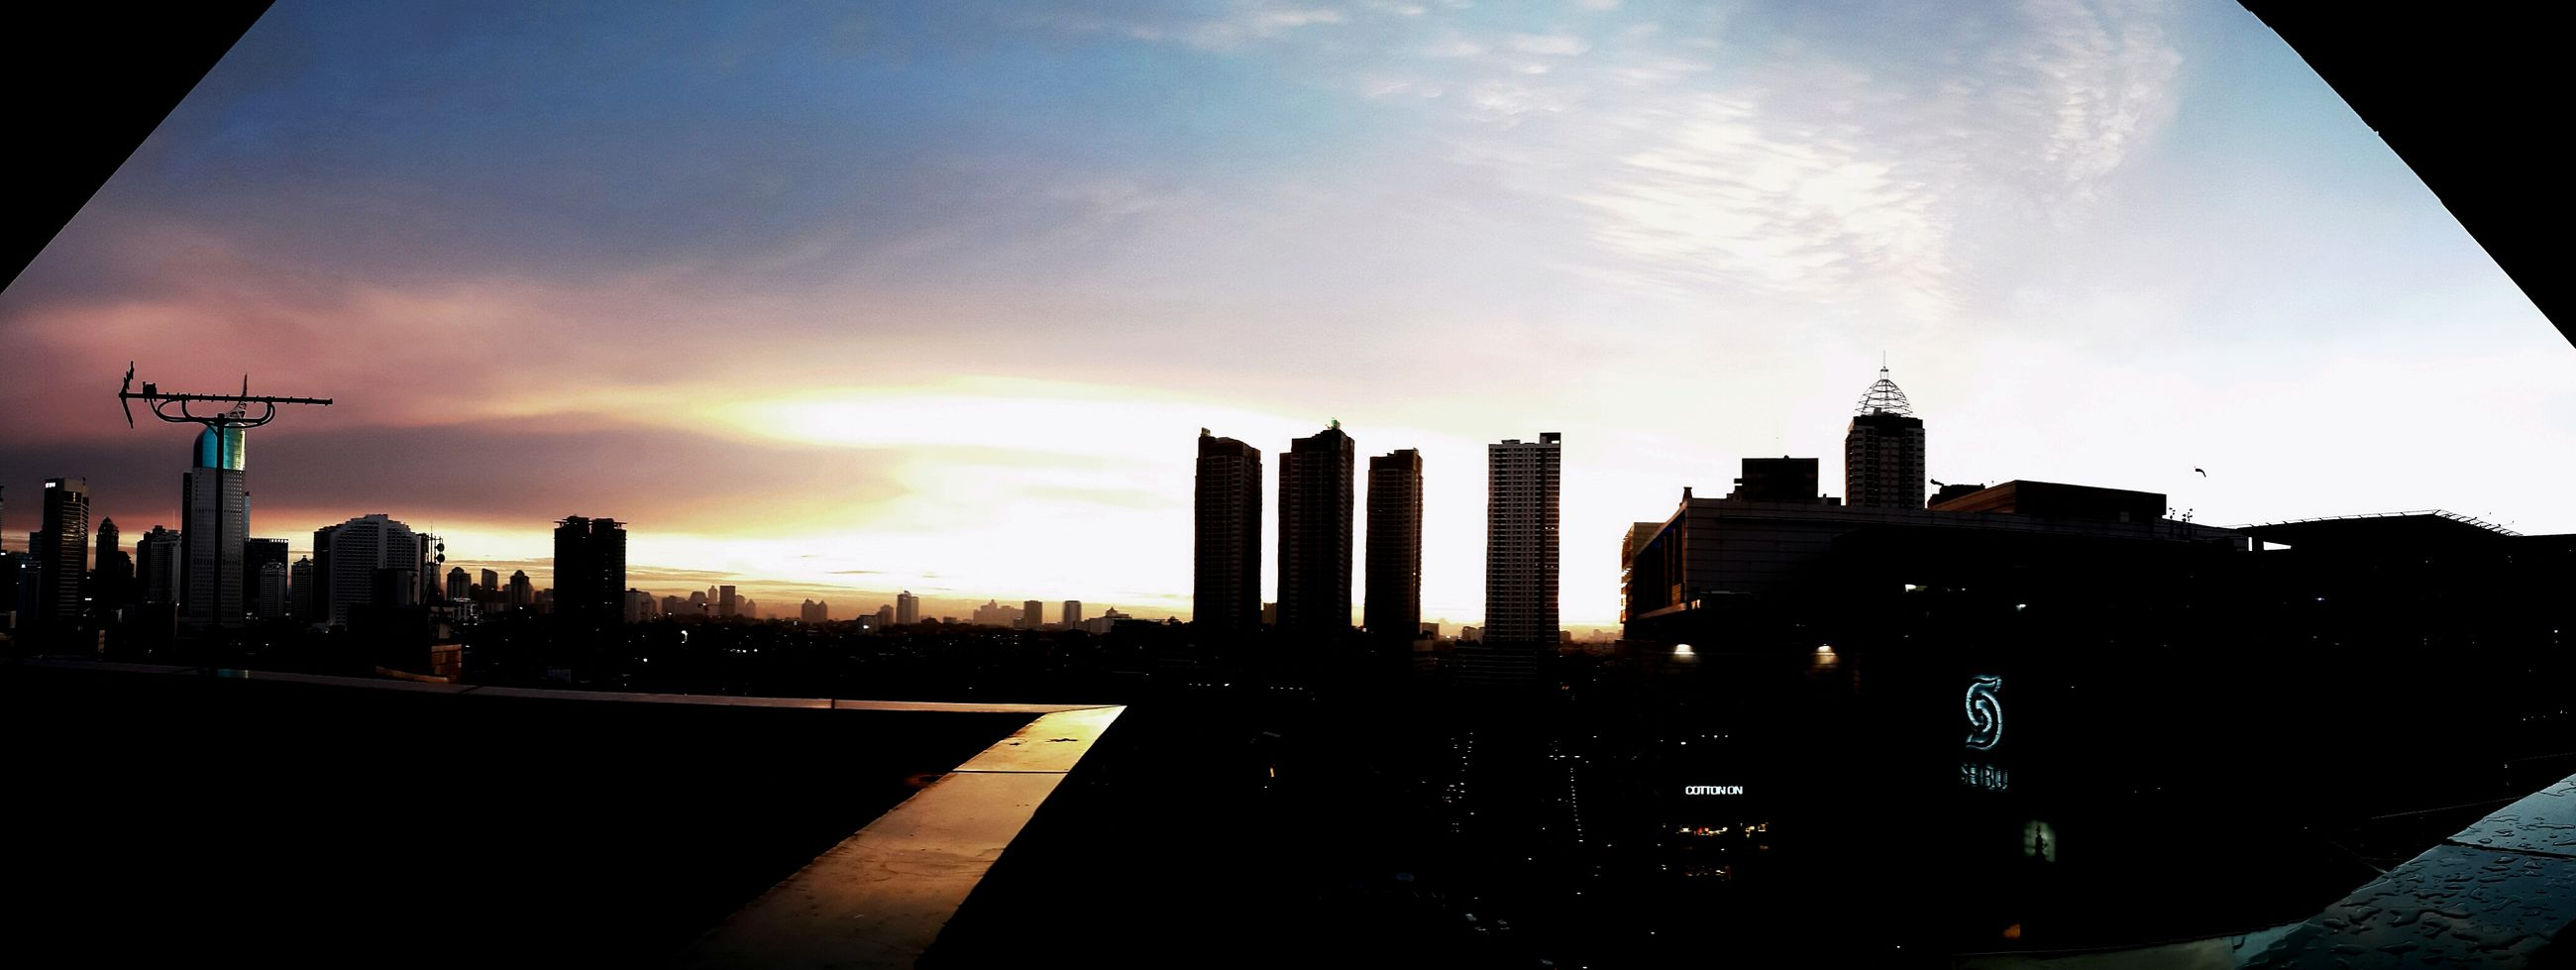 architecture, building exterior, built structure, sky, city, sunset, silhouette, skyscraper, cloud - sky, tower, tall - high, building, cloud, urban skyline, office building, cityscape, sunlight, low angle view, modern, cloudy